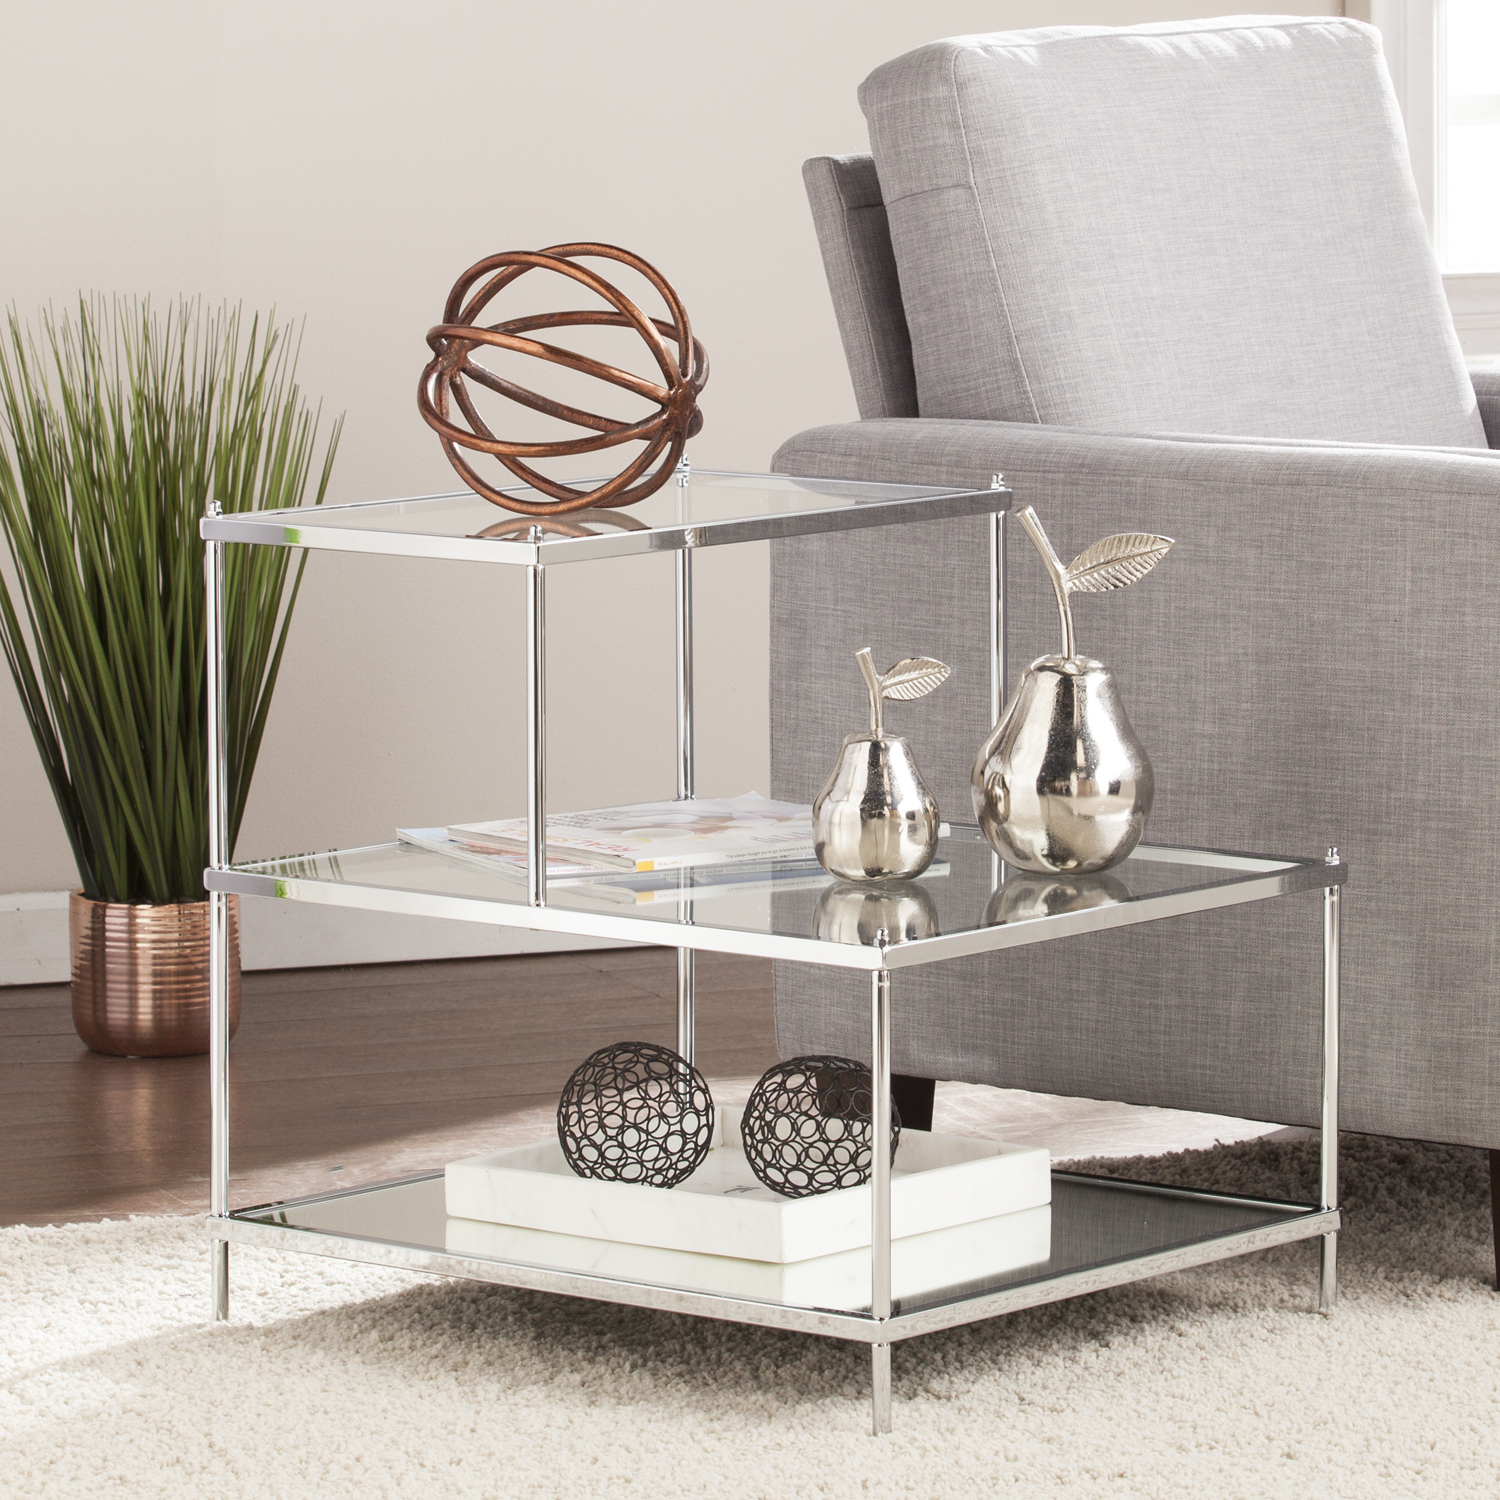 knox glam mirrored accent table chrome living room unfinished wood coffee teak outdoor end seahorse lamp victorian furniture marble top dining runner sewing pattern outside wall